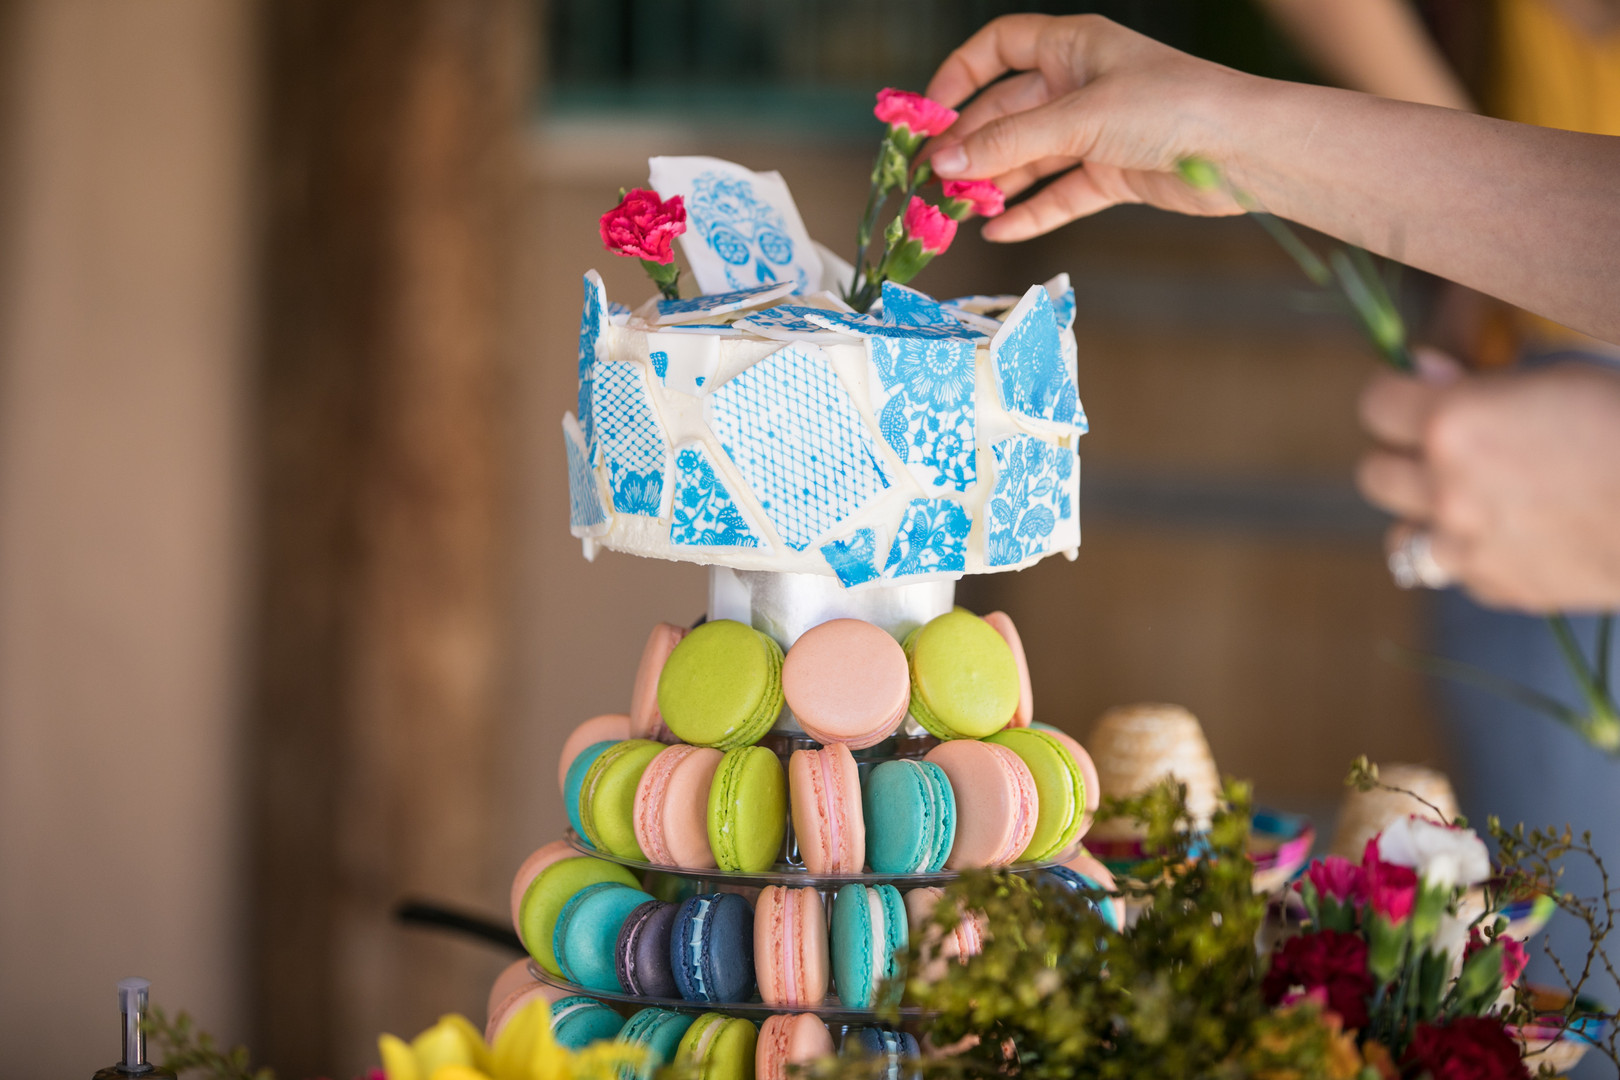 Broken Tile Cake with Macaron Tower Phot